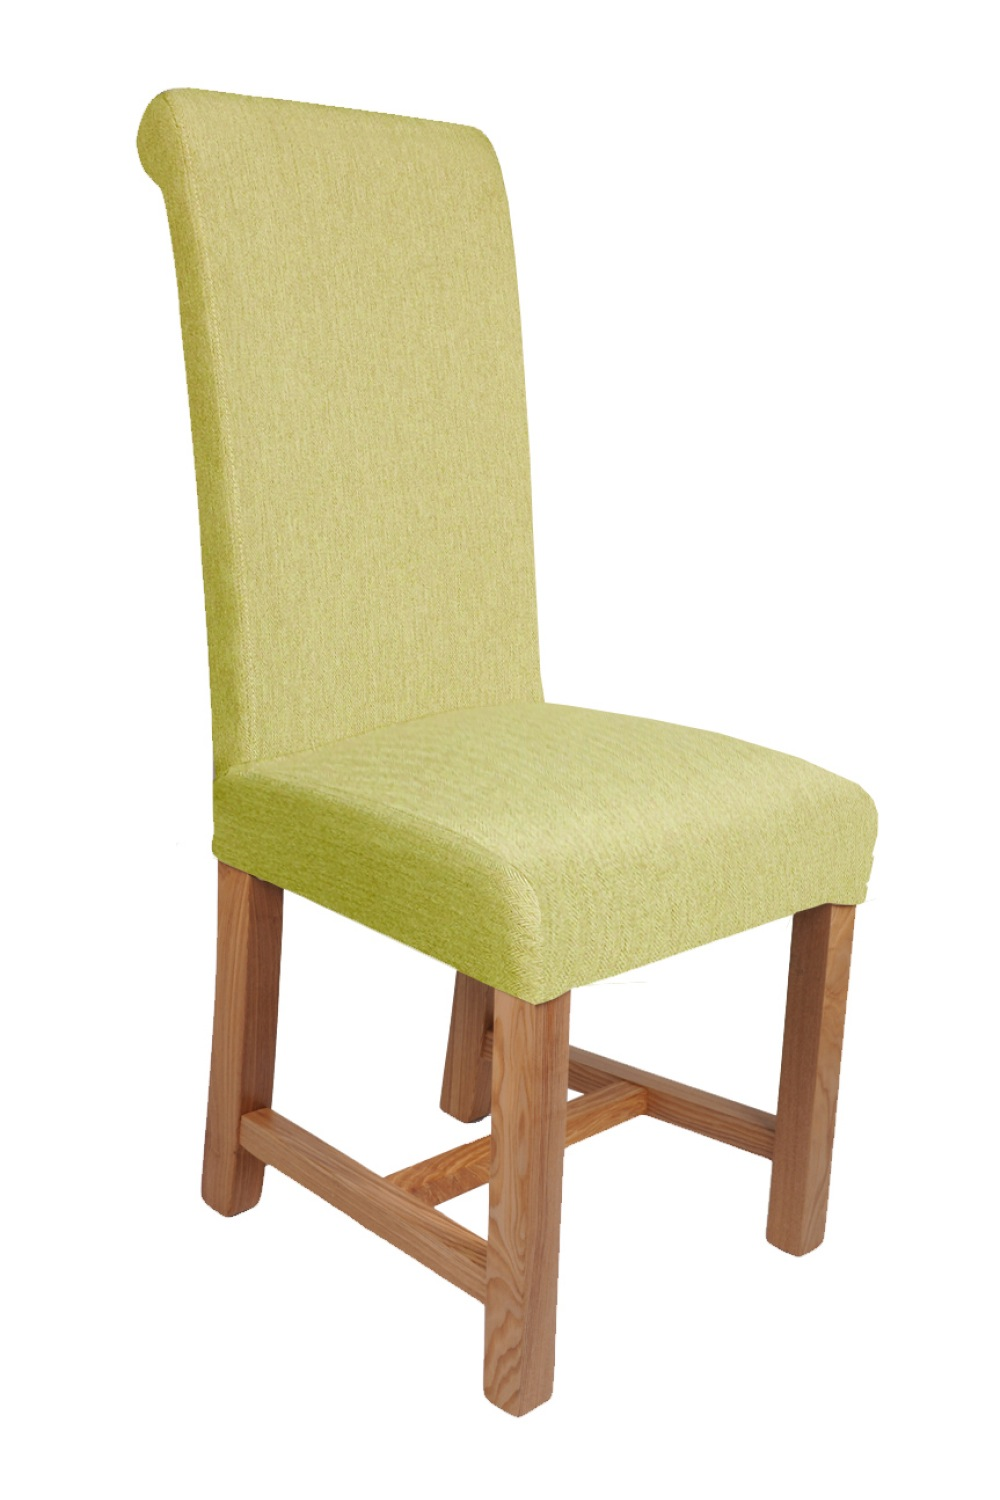 Lime Green Leather Dining Chair Dining Room Ideas